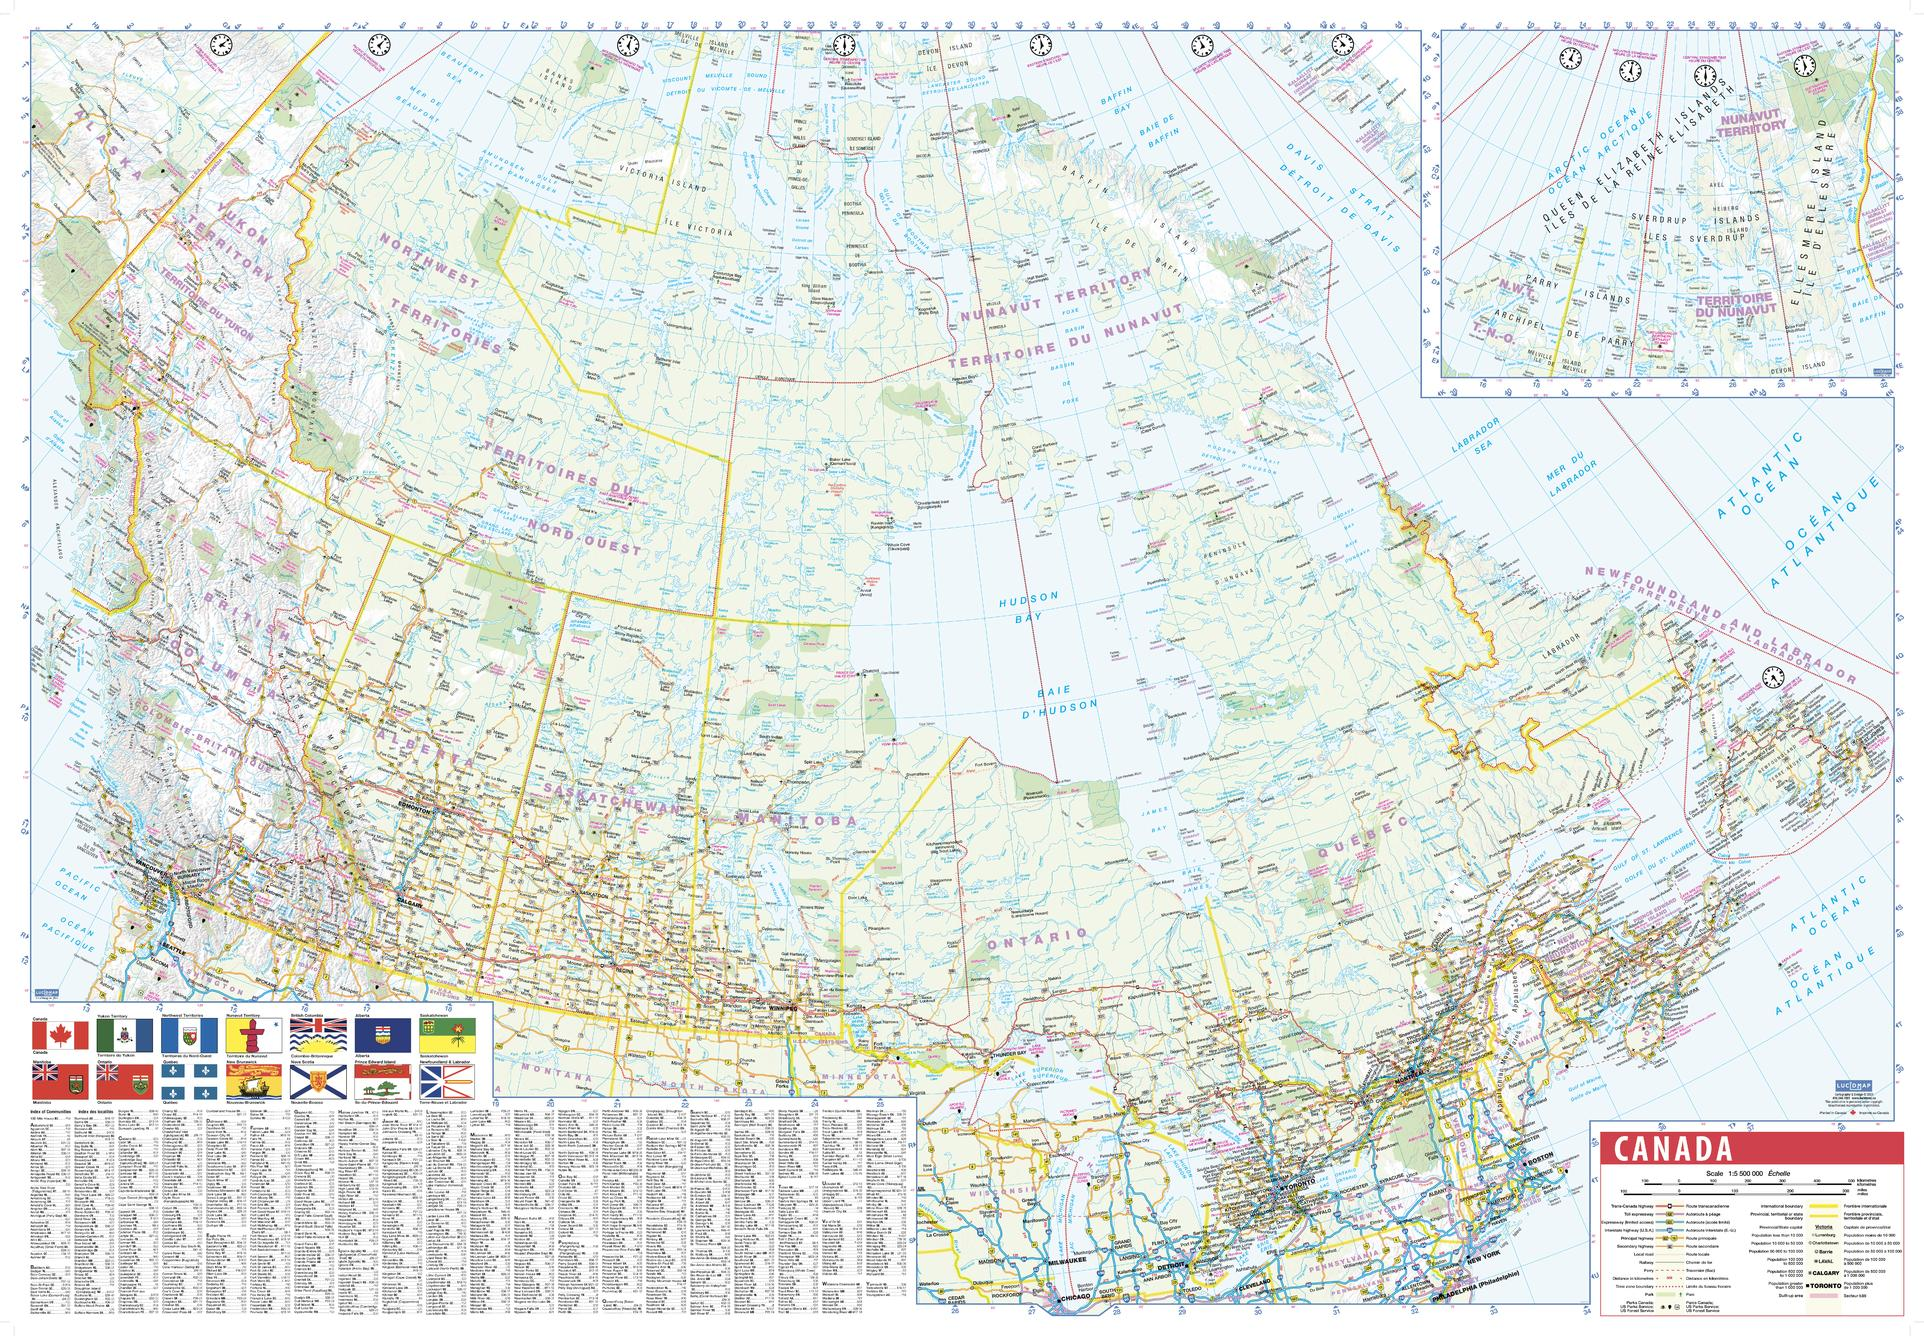 Canada Wall Map with Flags and Index - small